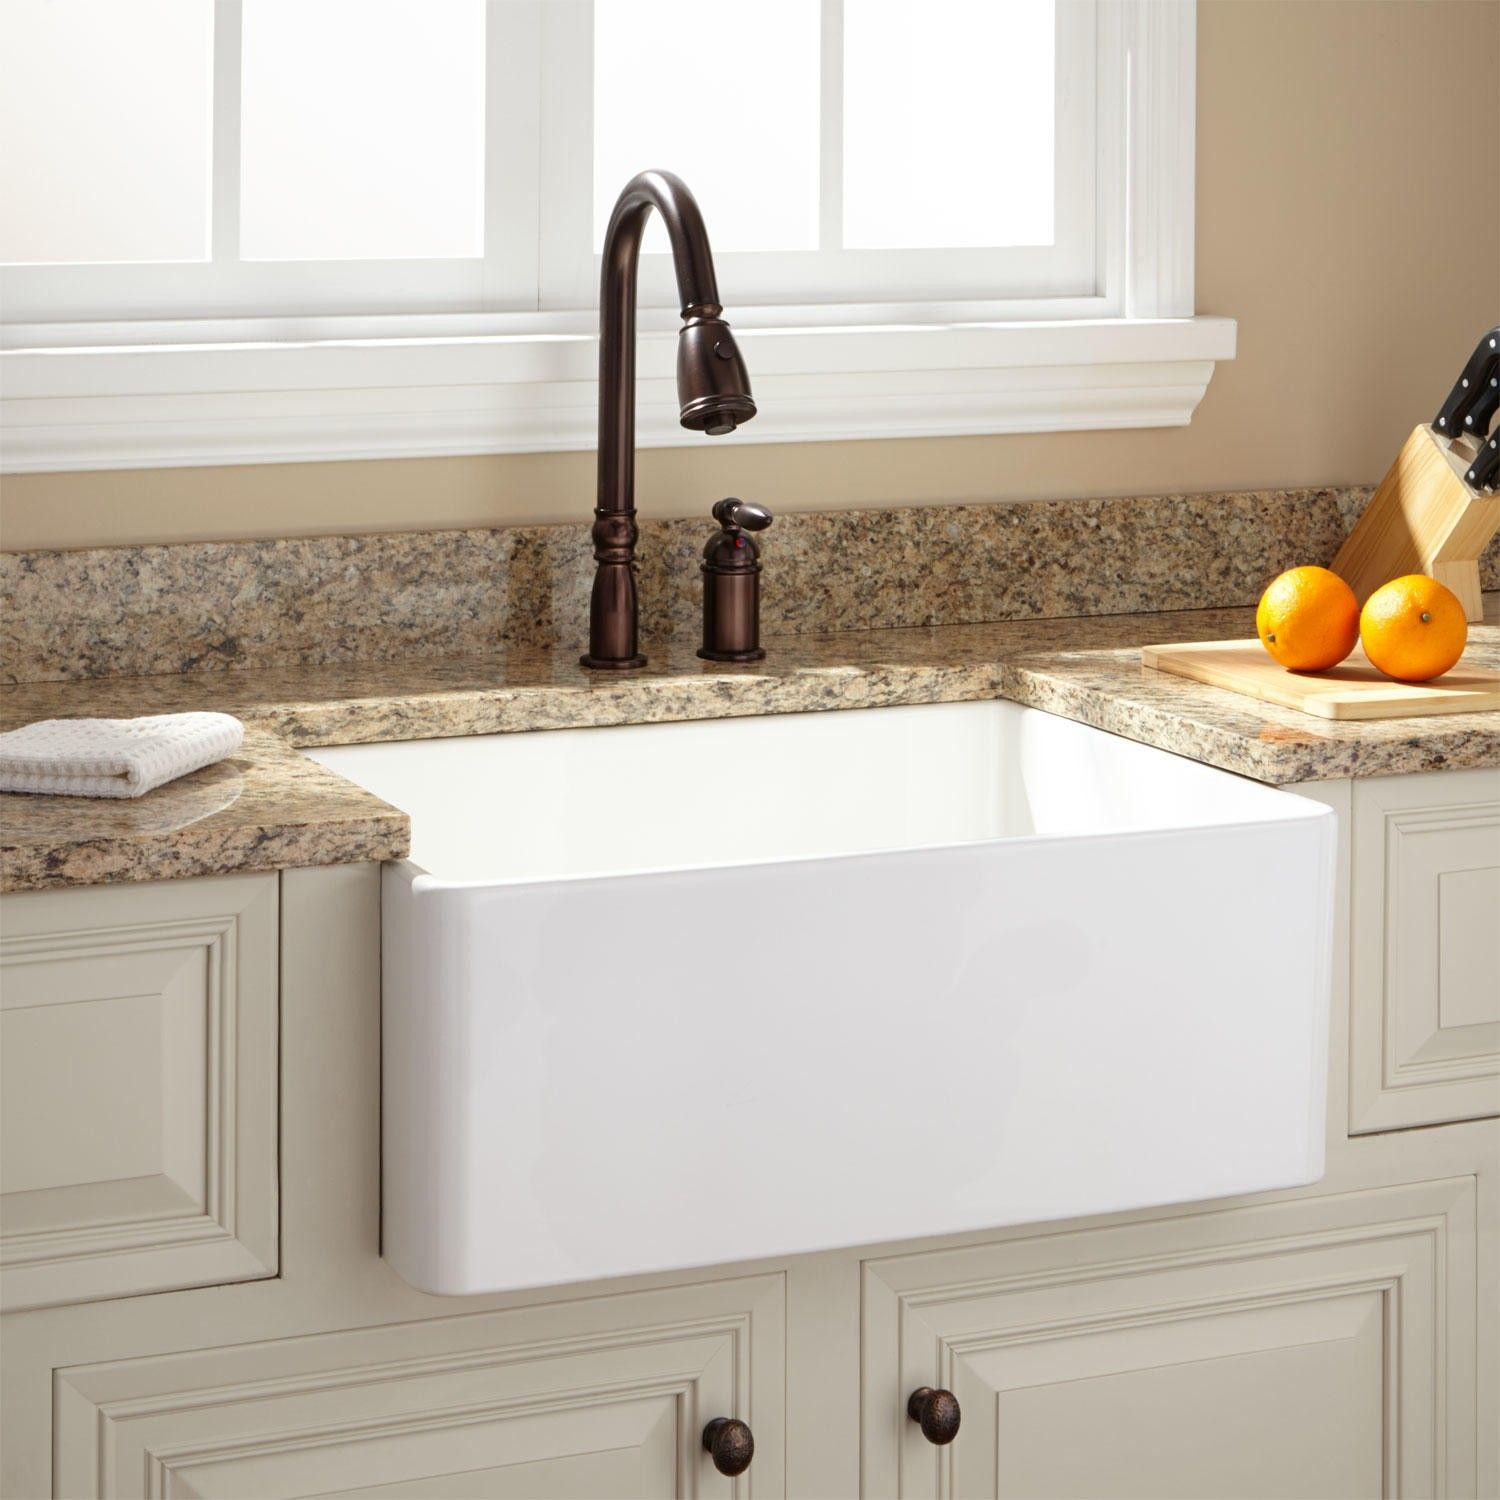 Etonnant Apron Front Fireclay Sink Signature Hardware In Proportions 1500 X 1500 26  Baldwin Fireclay Farmhouse Sink   Farmhouse Kitchen Sink, Along With The  Other A